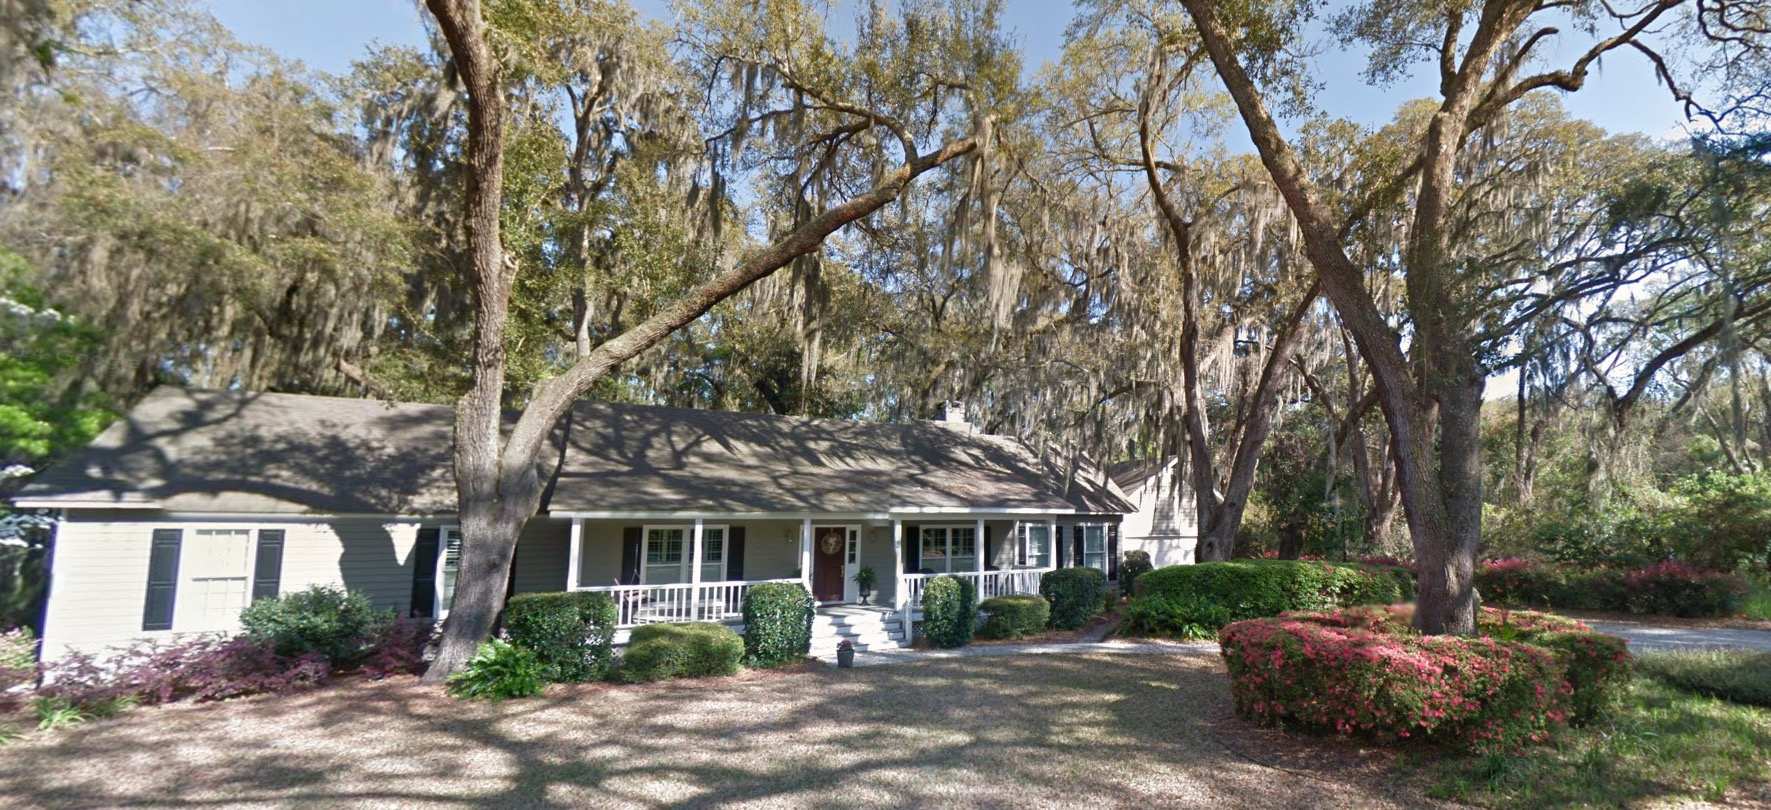 Epworth Acres Homes for Sale St Simons Island Georgia